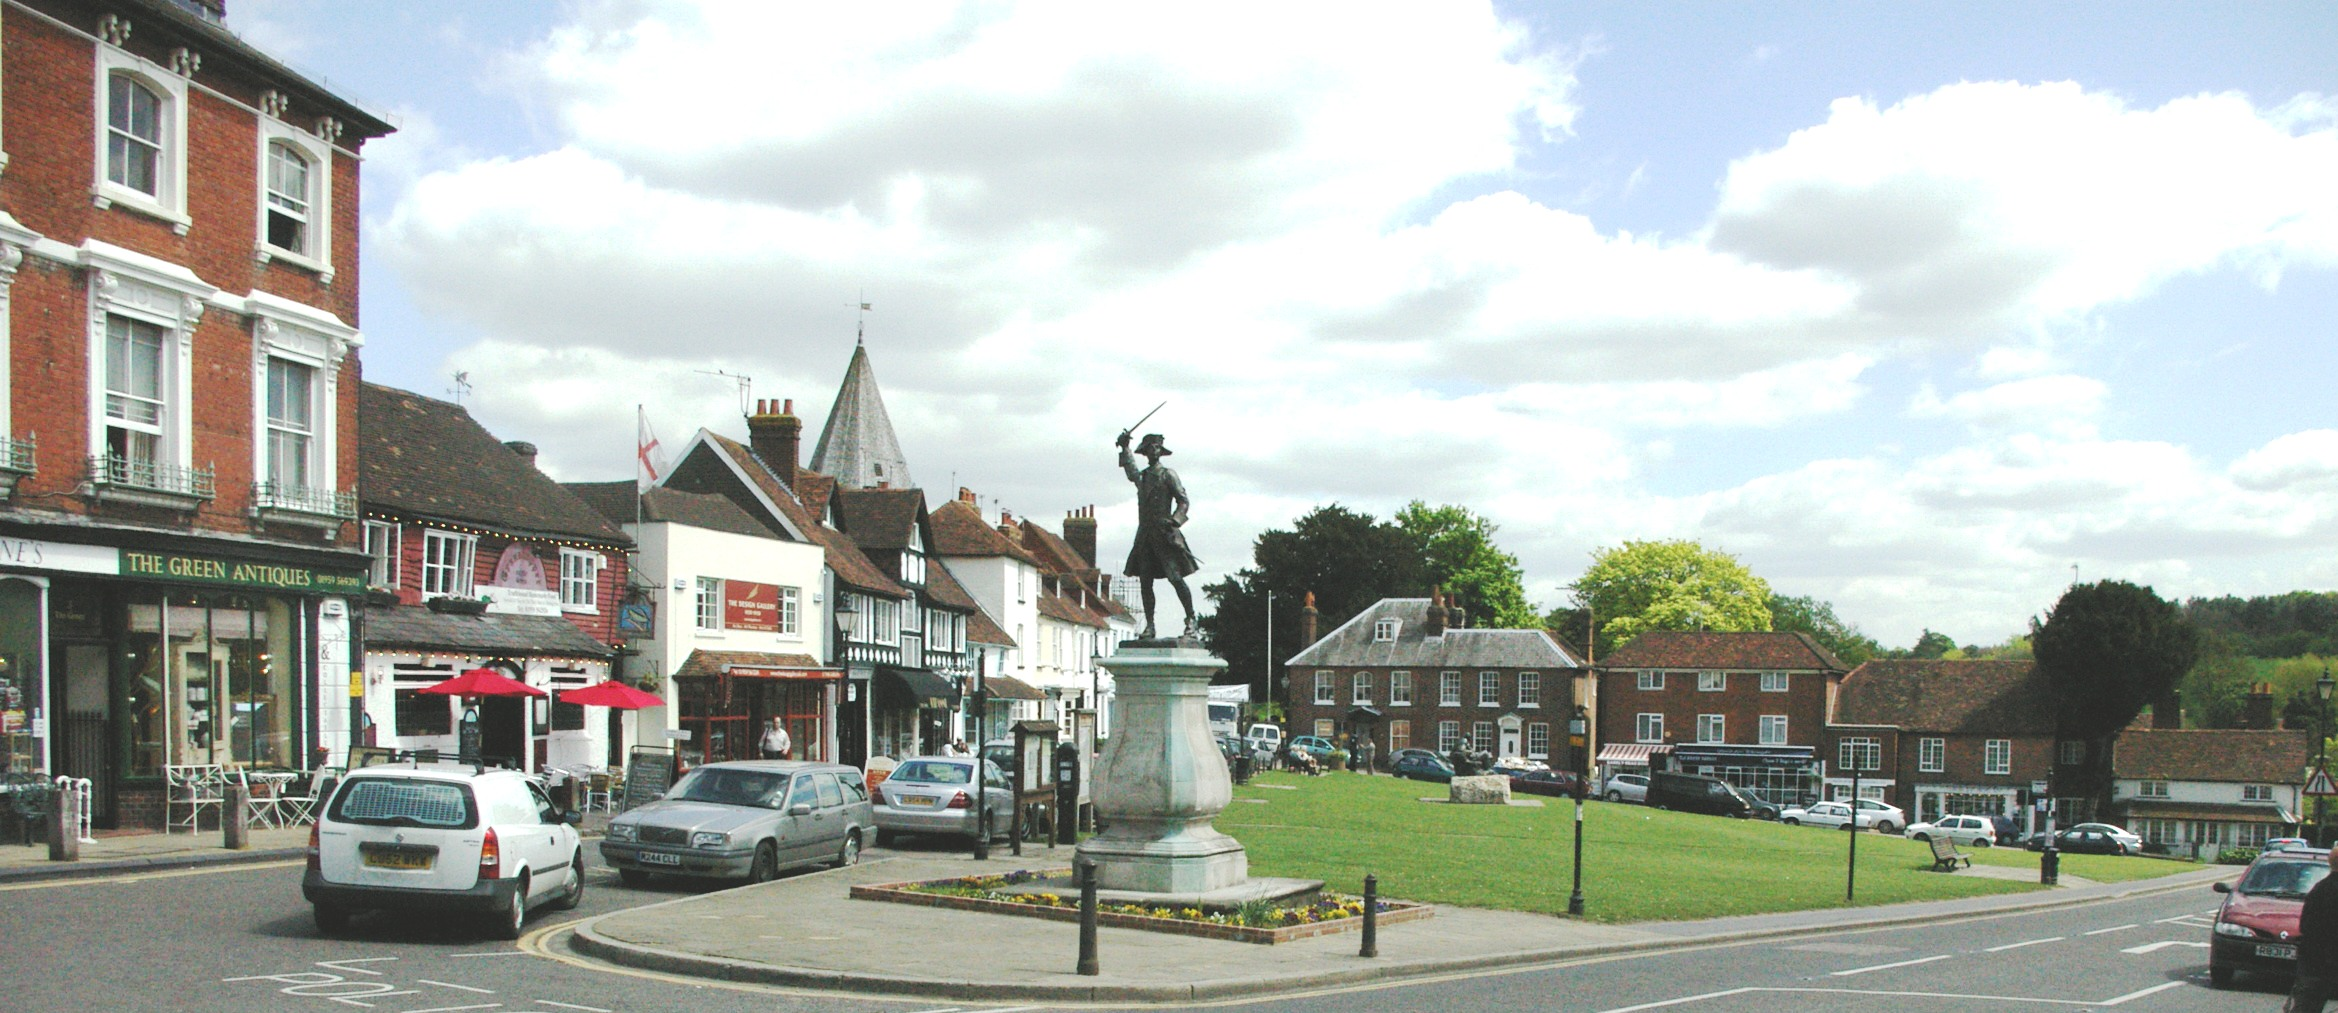 File:Westerham.jpg - Wikimedia Commons